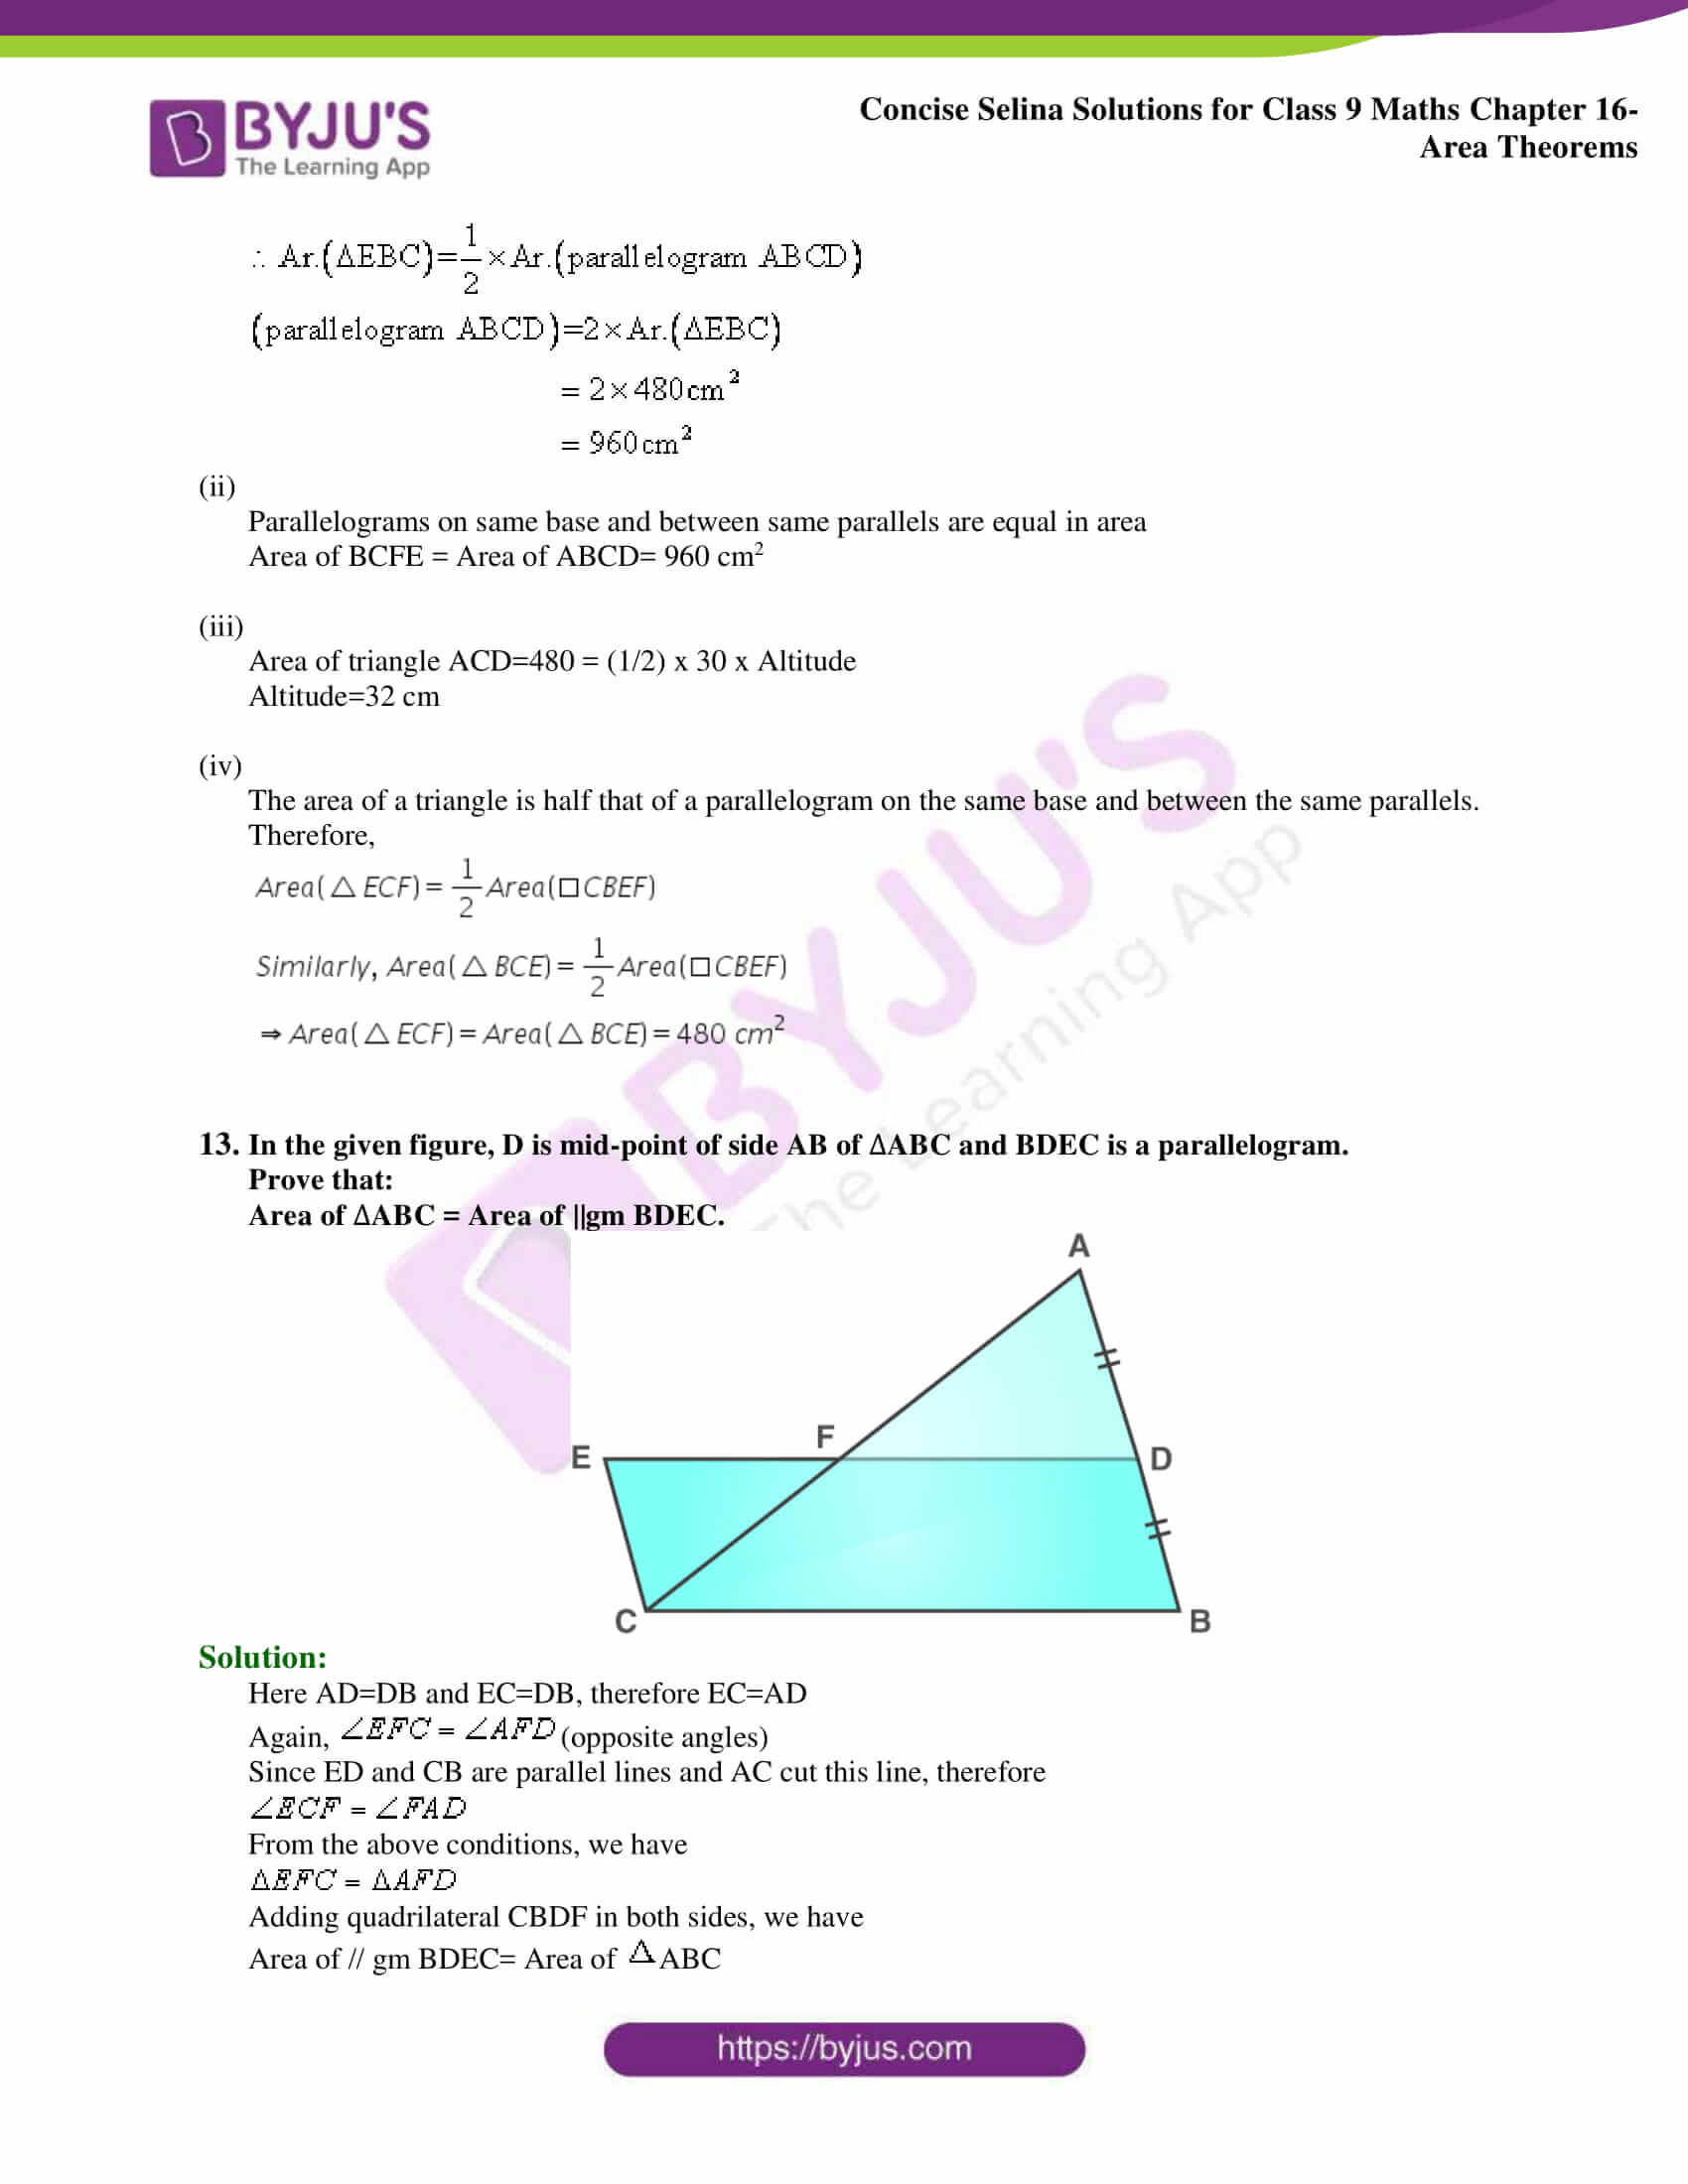 Concise Selina Solutions Class 9 Maths Chapter 16 Area Theorems part 11